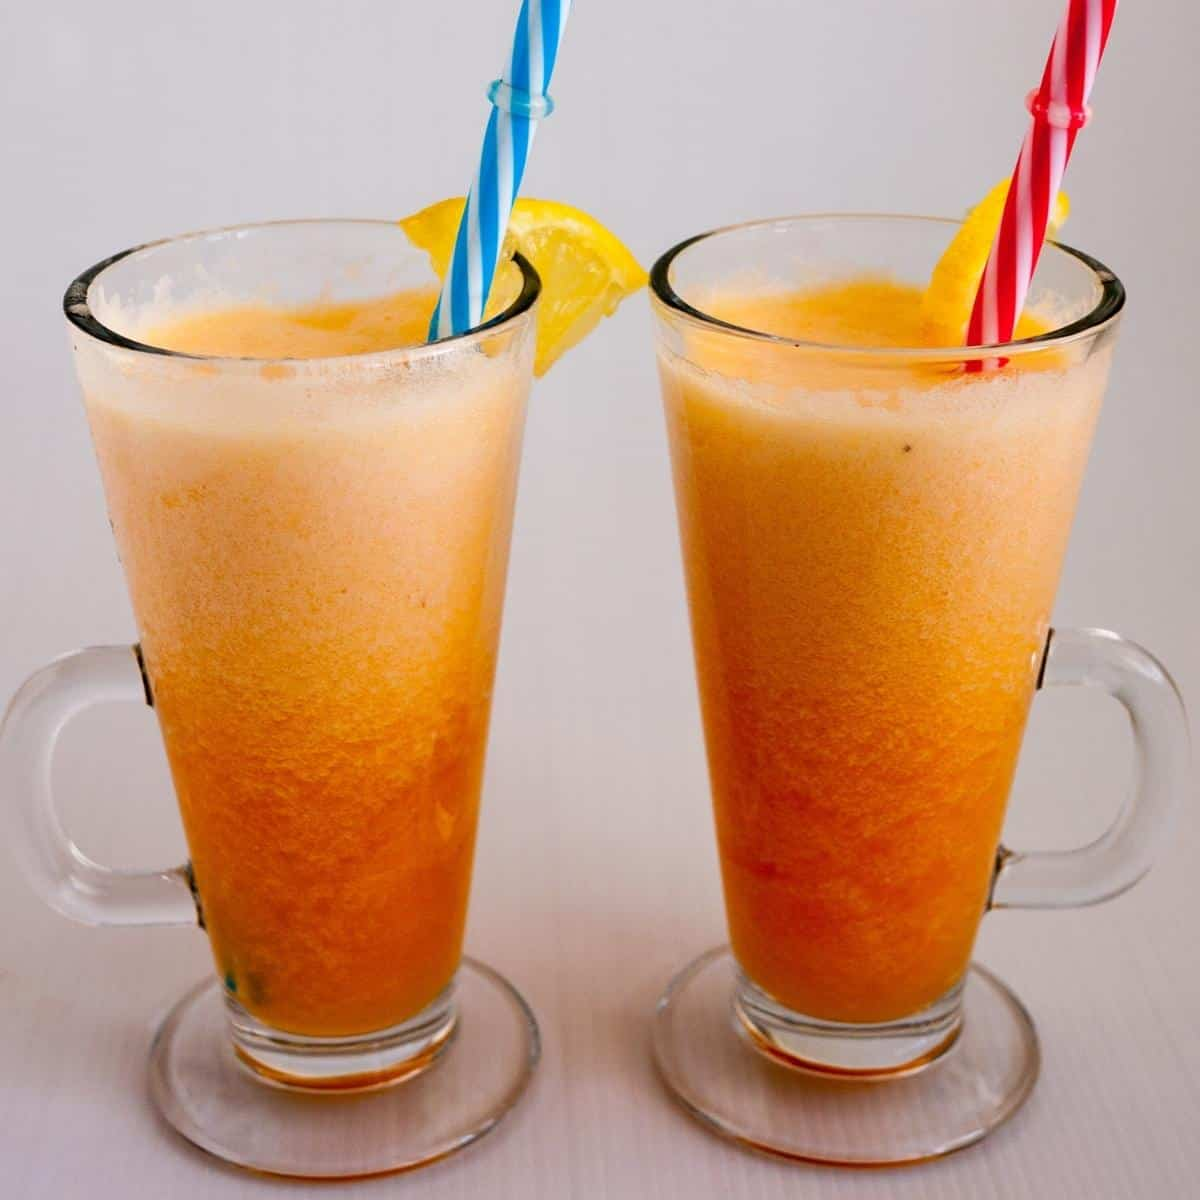 Two glasses with smoothies and straws